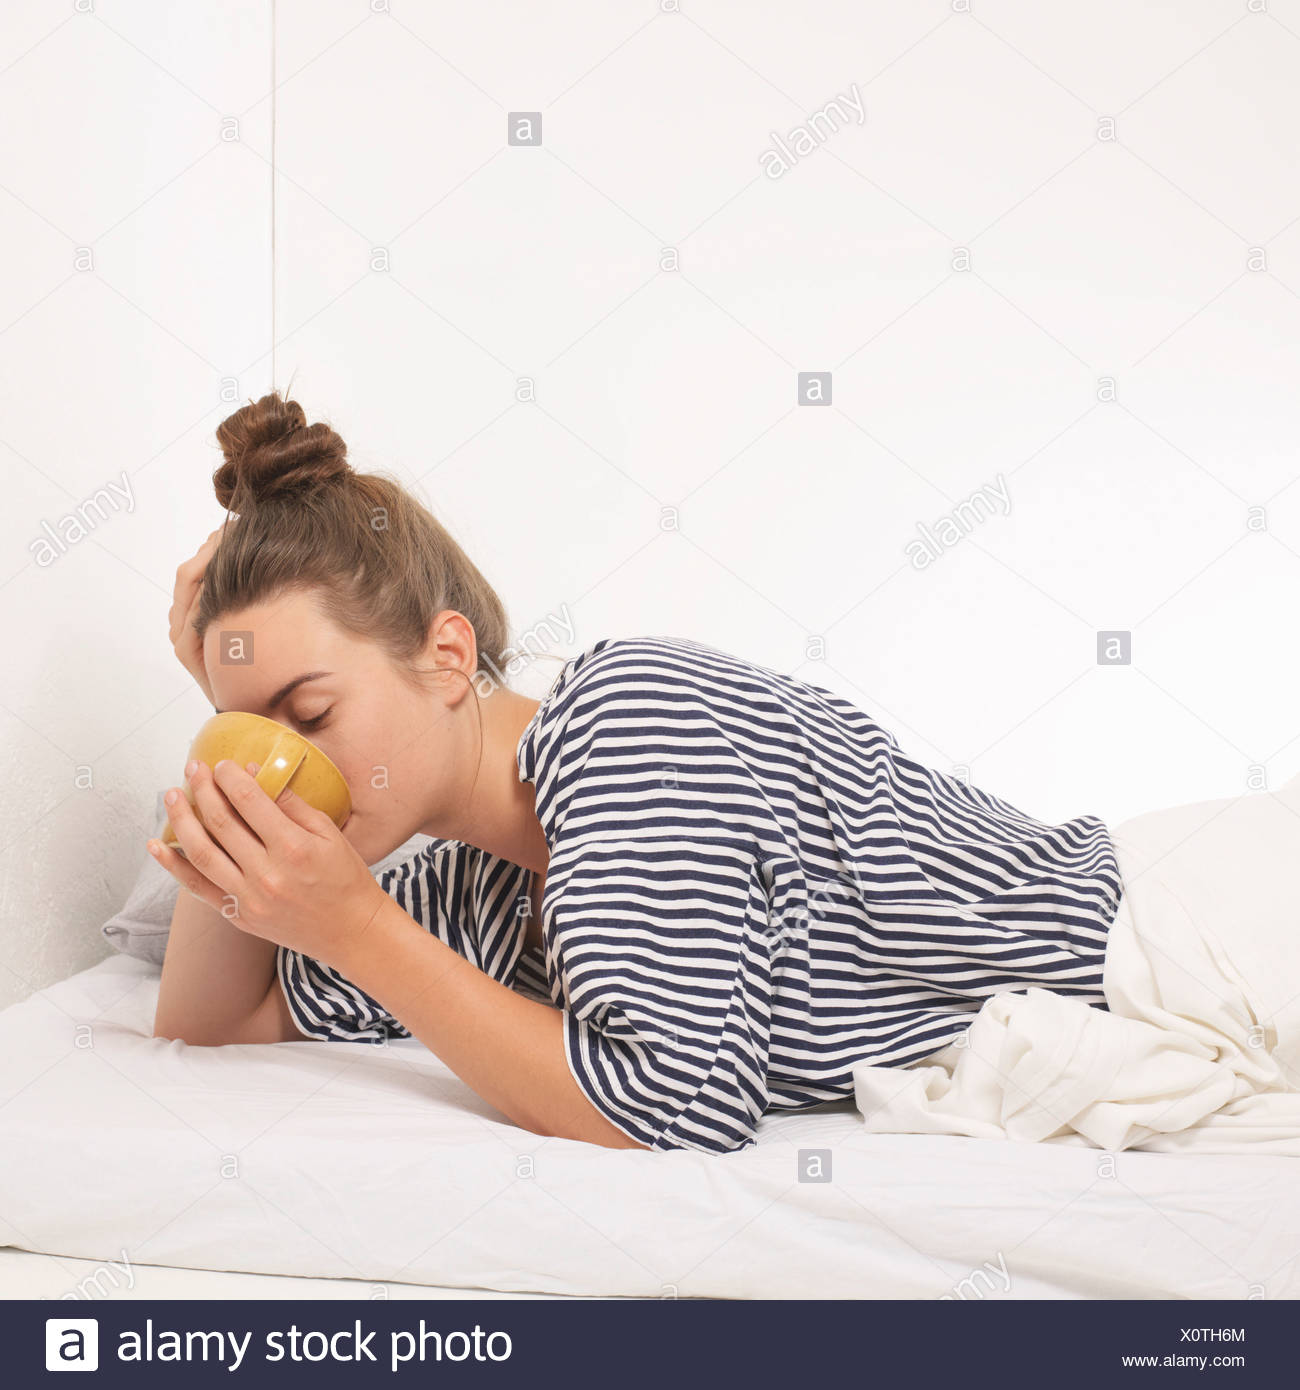 Woman in bed drinking from mug Stock Photo